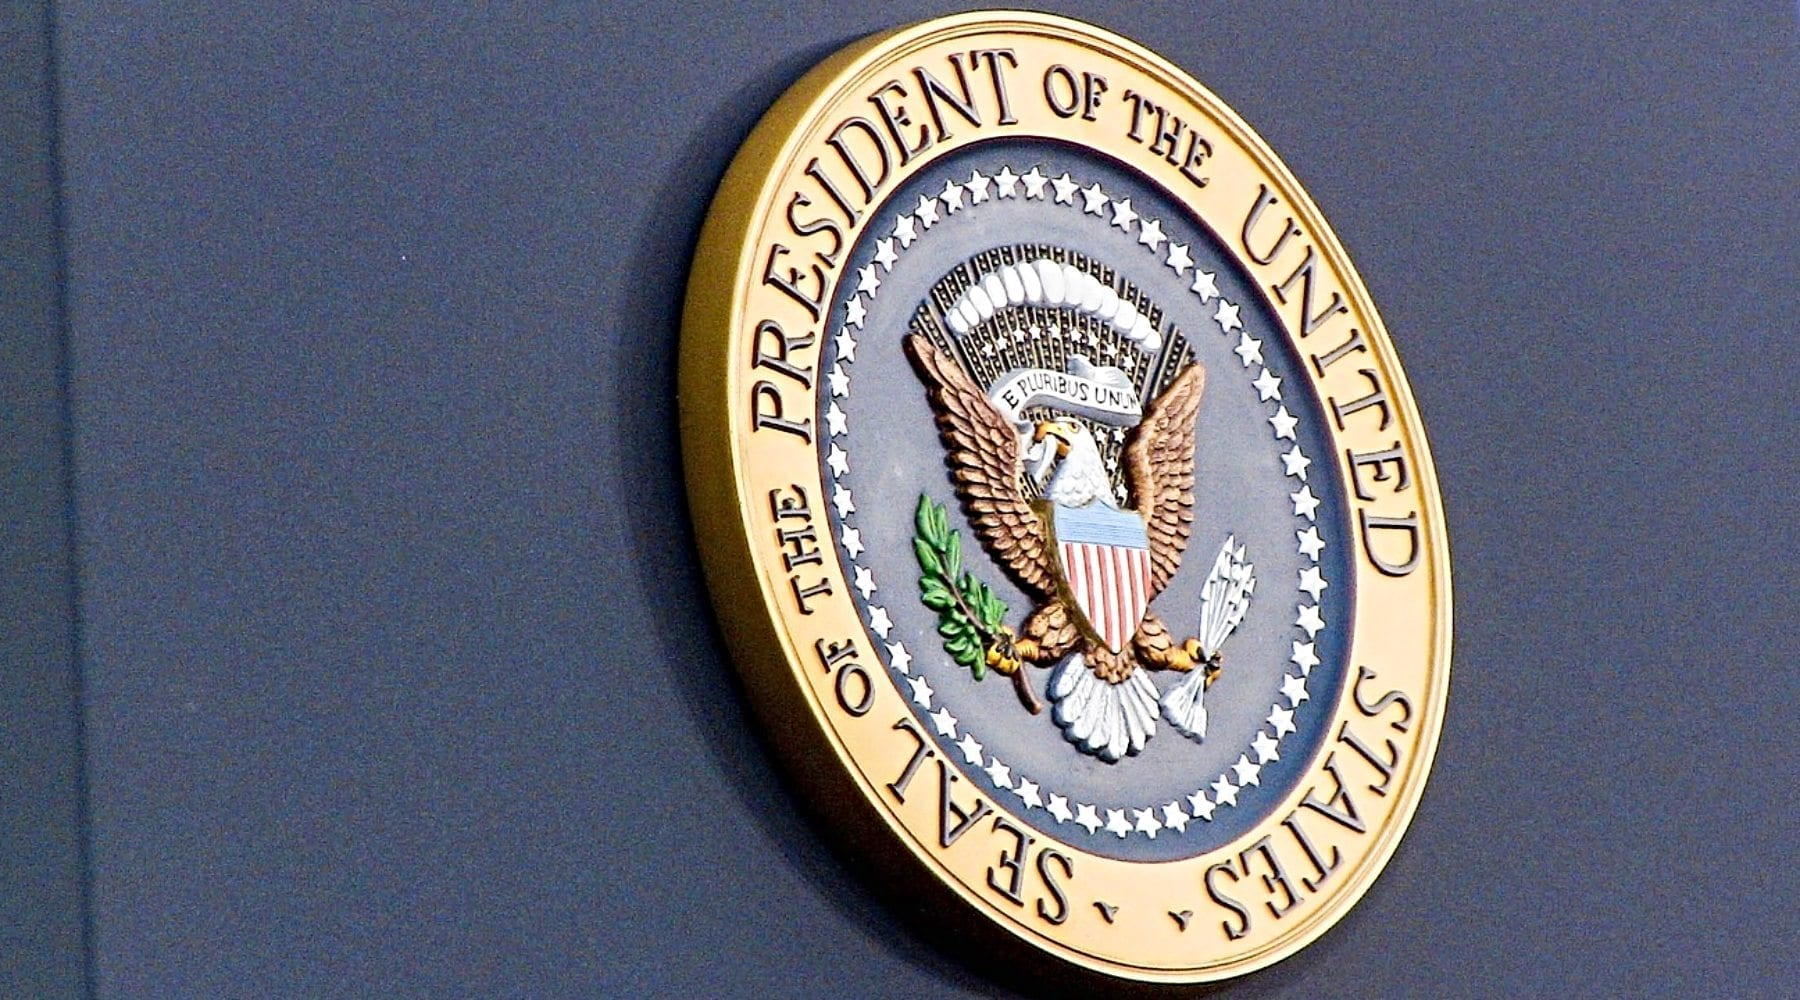 Importance of Presidential Morality Depends on Who's in Charge